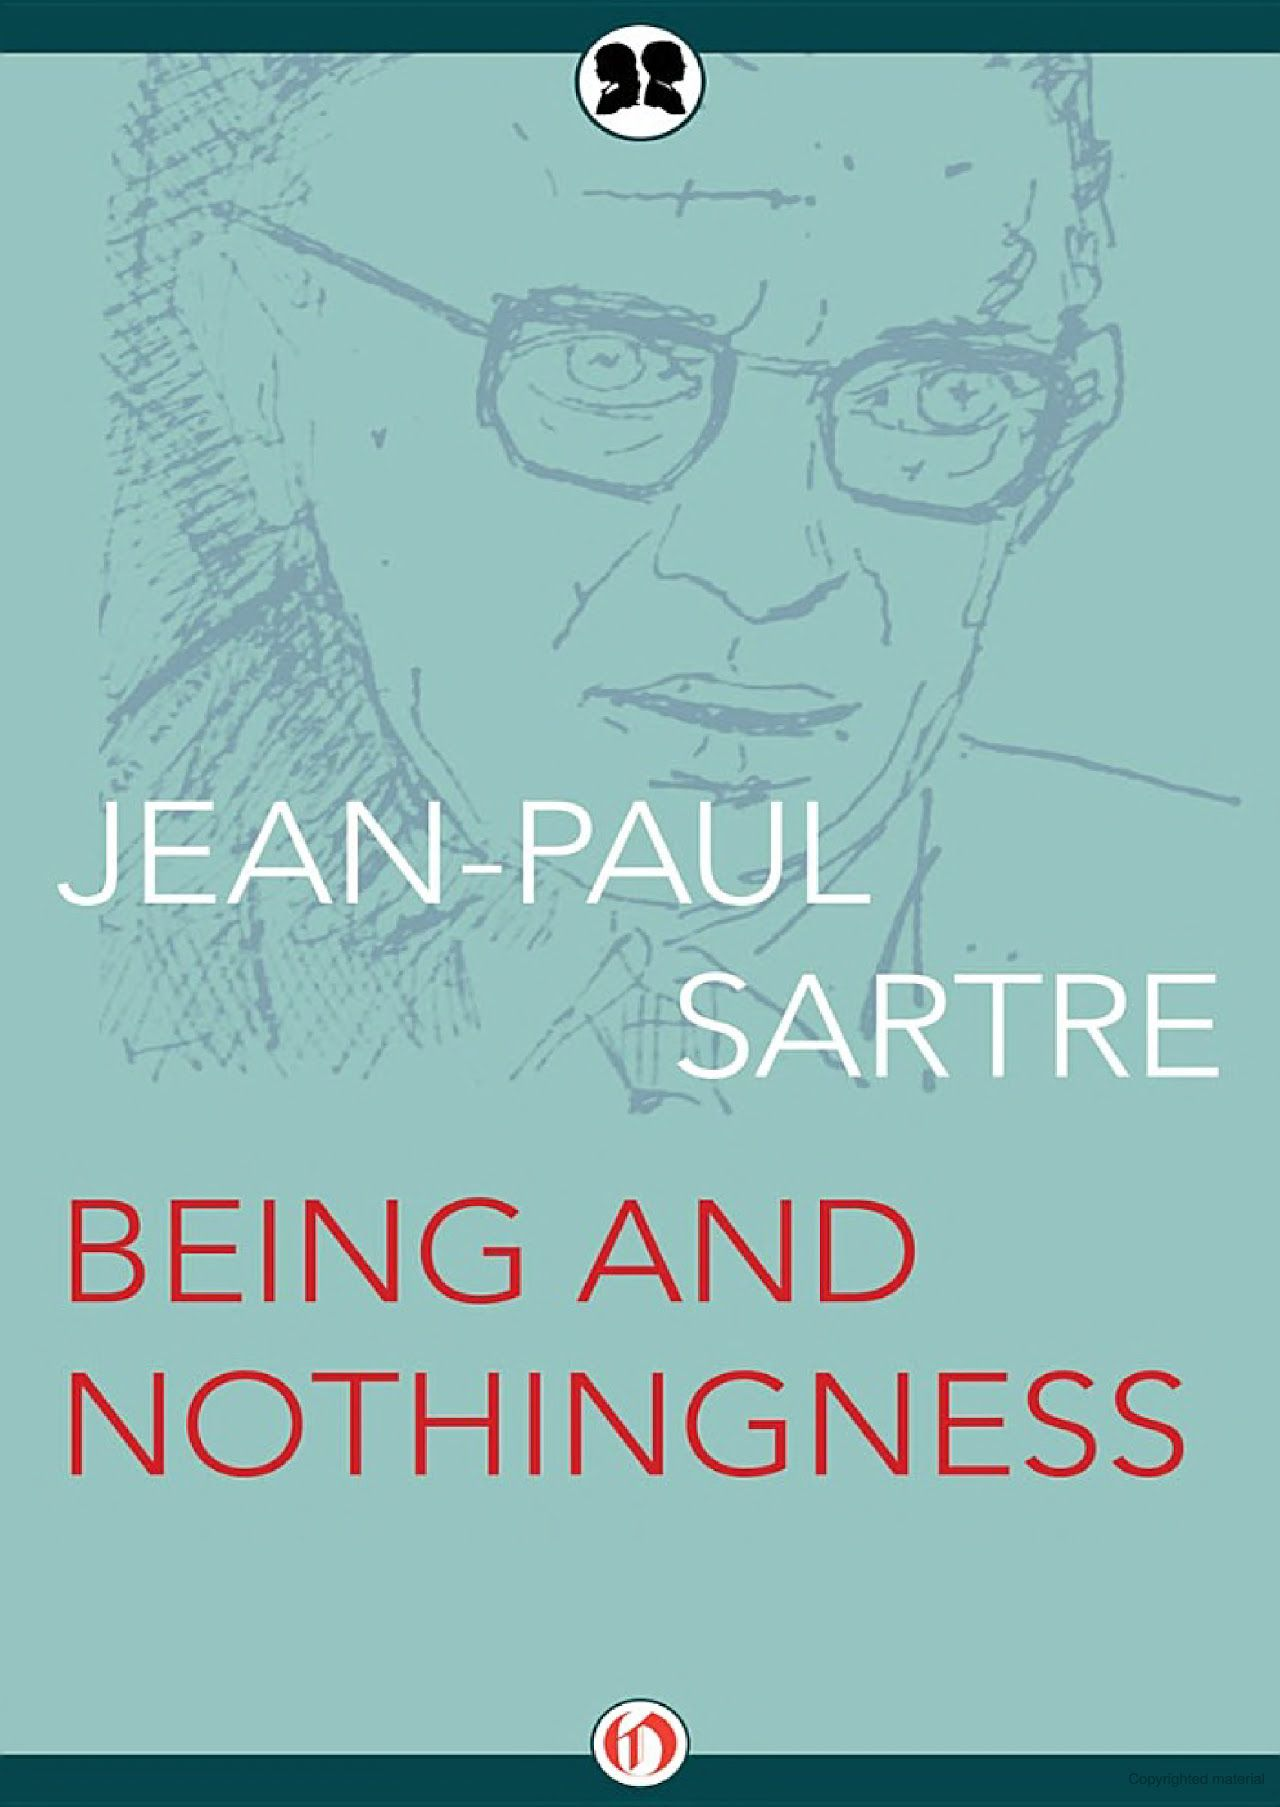 Being and Nothingness - Jean-Paul Sartre - Google Books #jeanpaulsartre